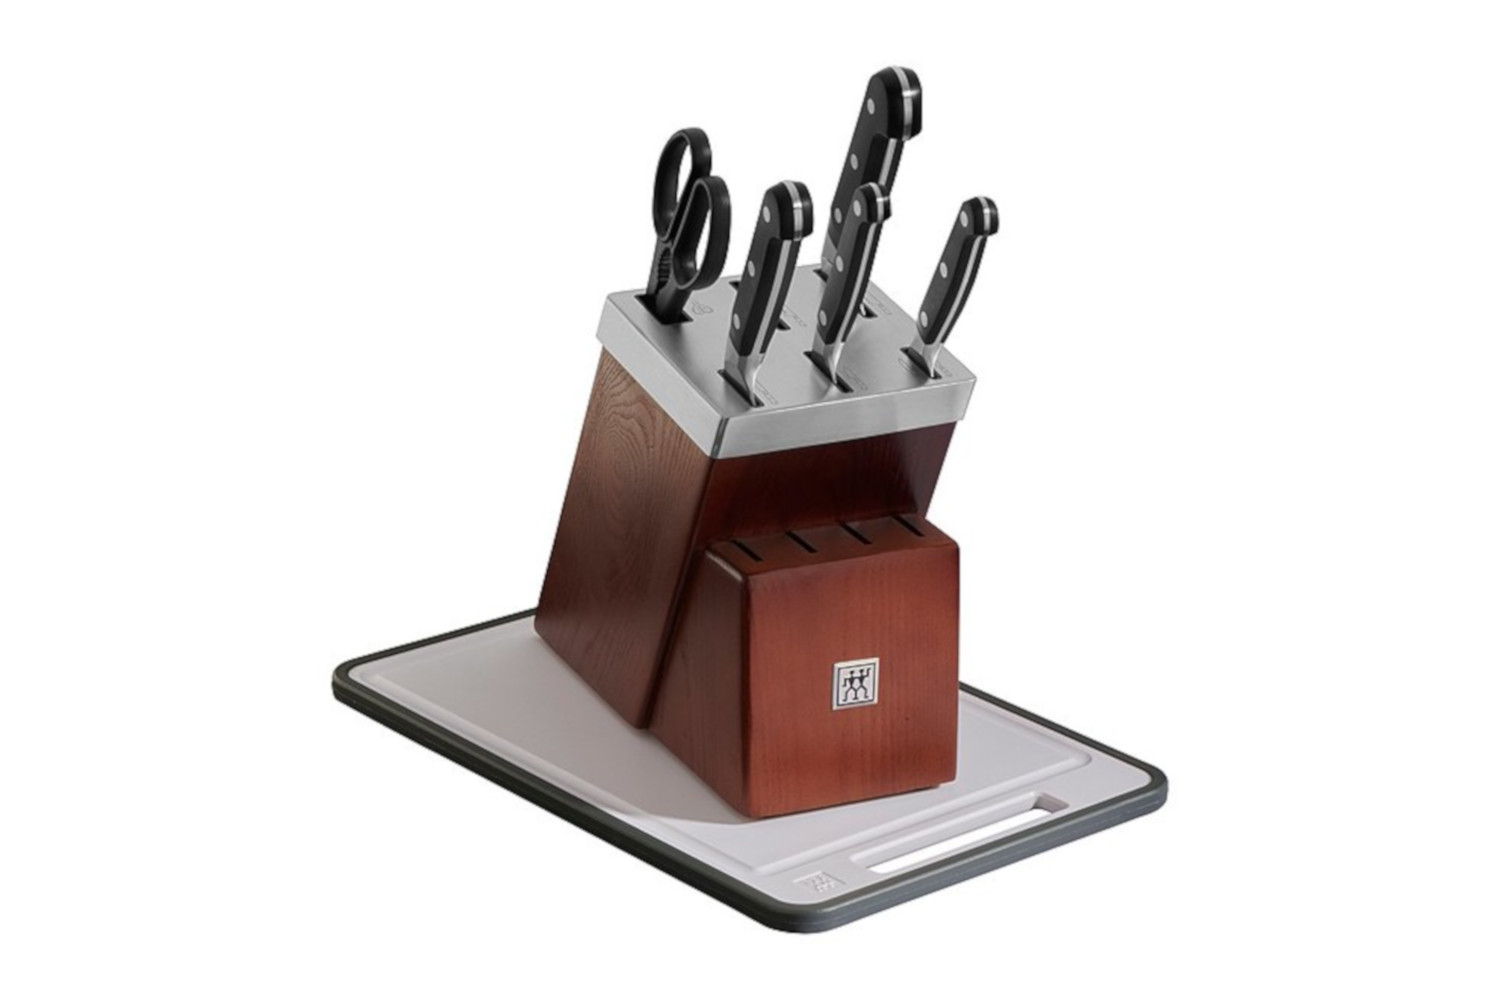 Zwilling Pro 7 Piece Self Sharpening Knife Block Set